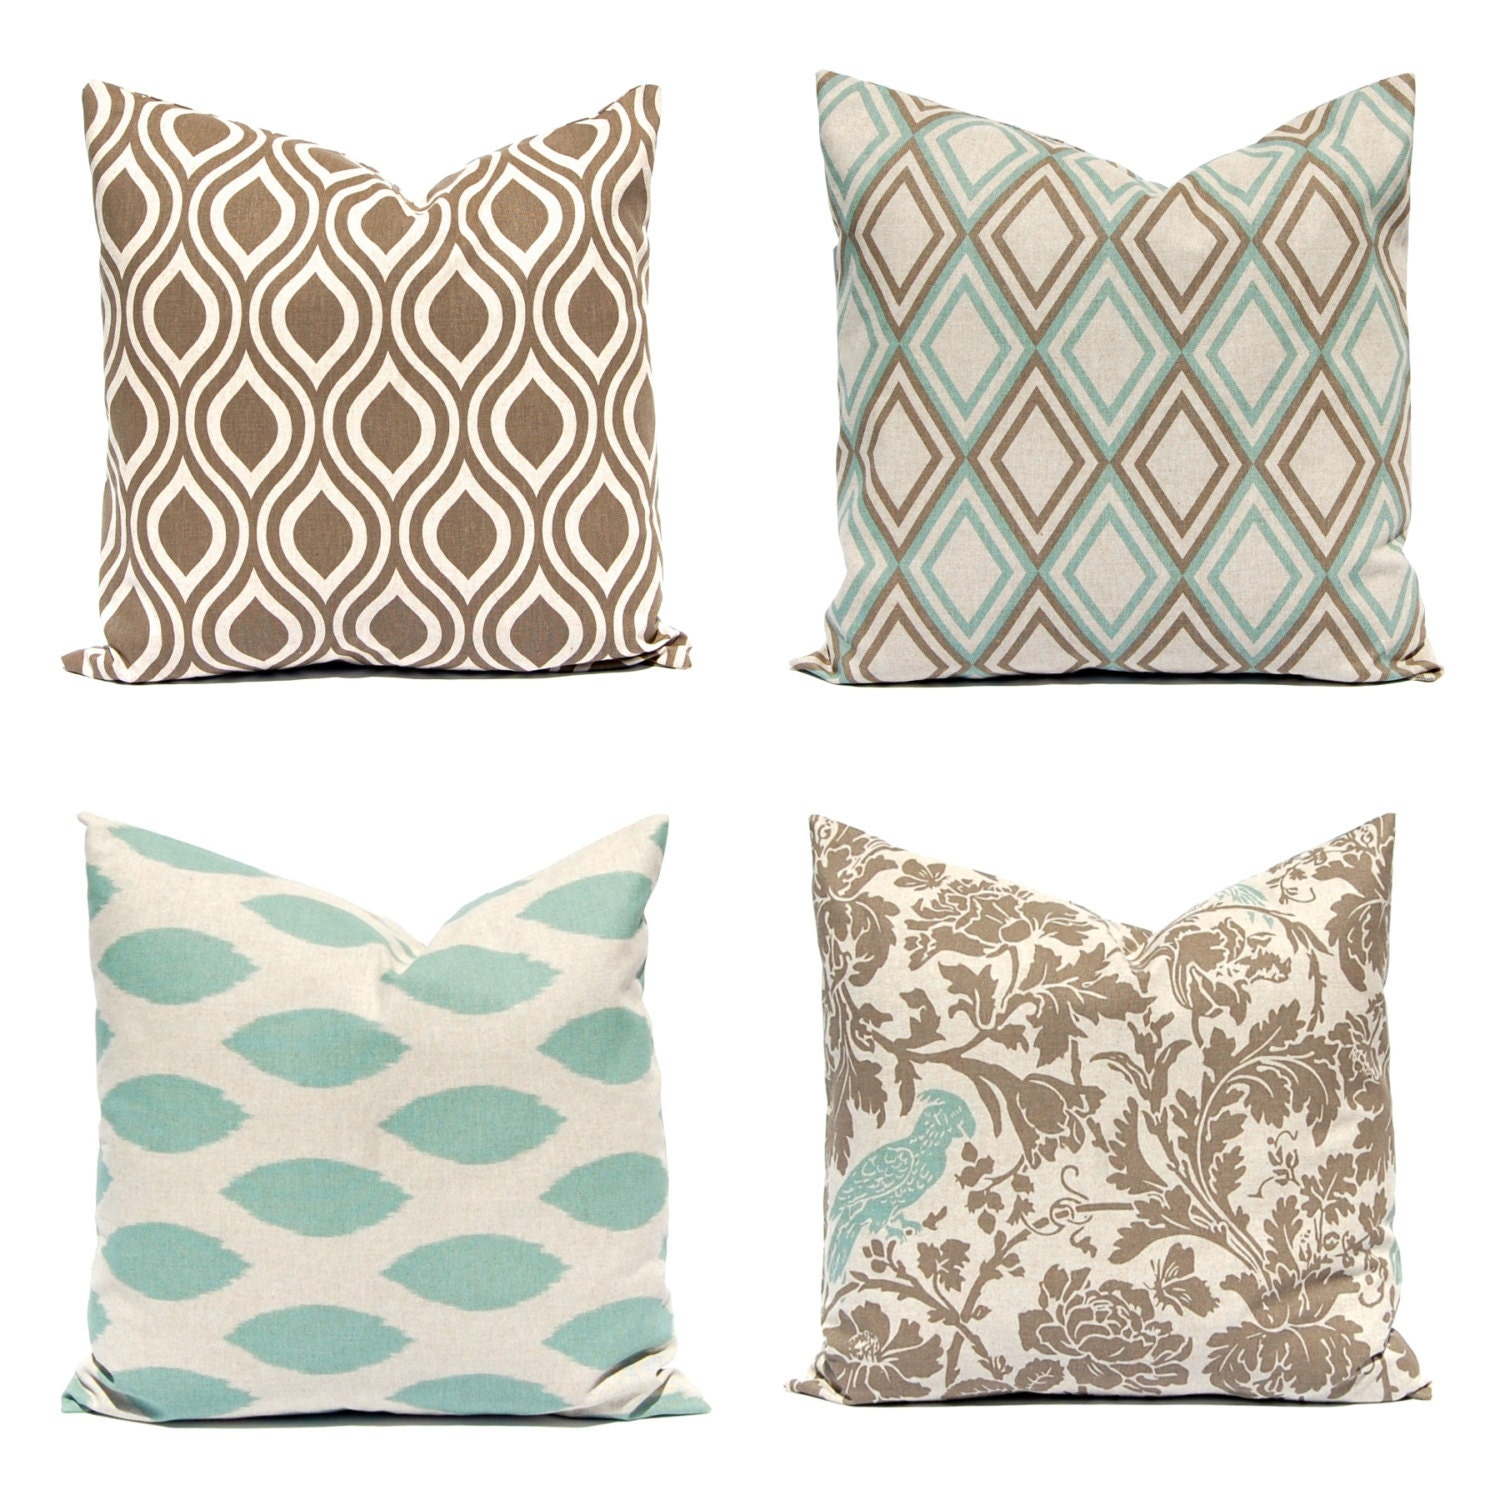 couch pillow covers sofa pillows seafoam green pillows. Black Bedroom Furniture Sets. Home Design Ideas